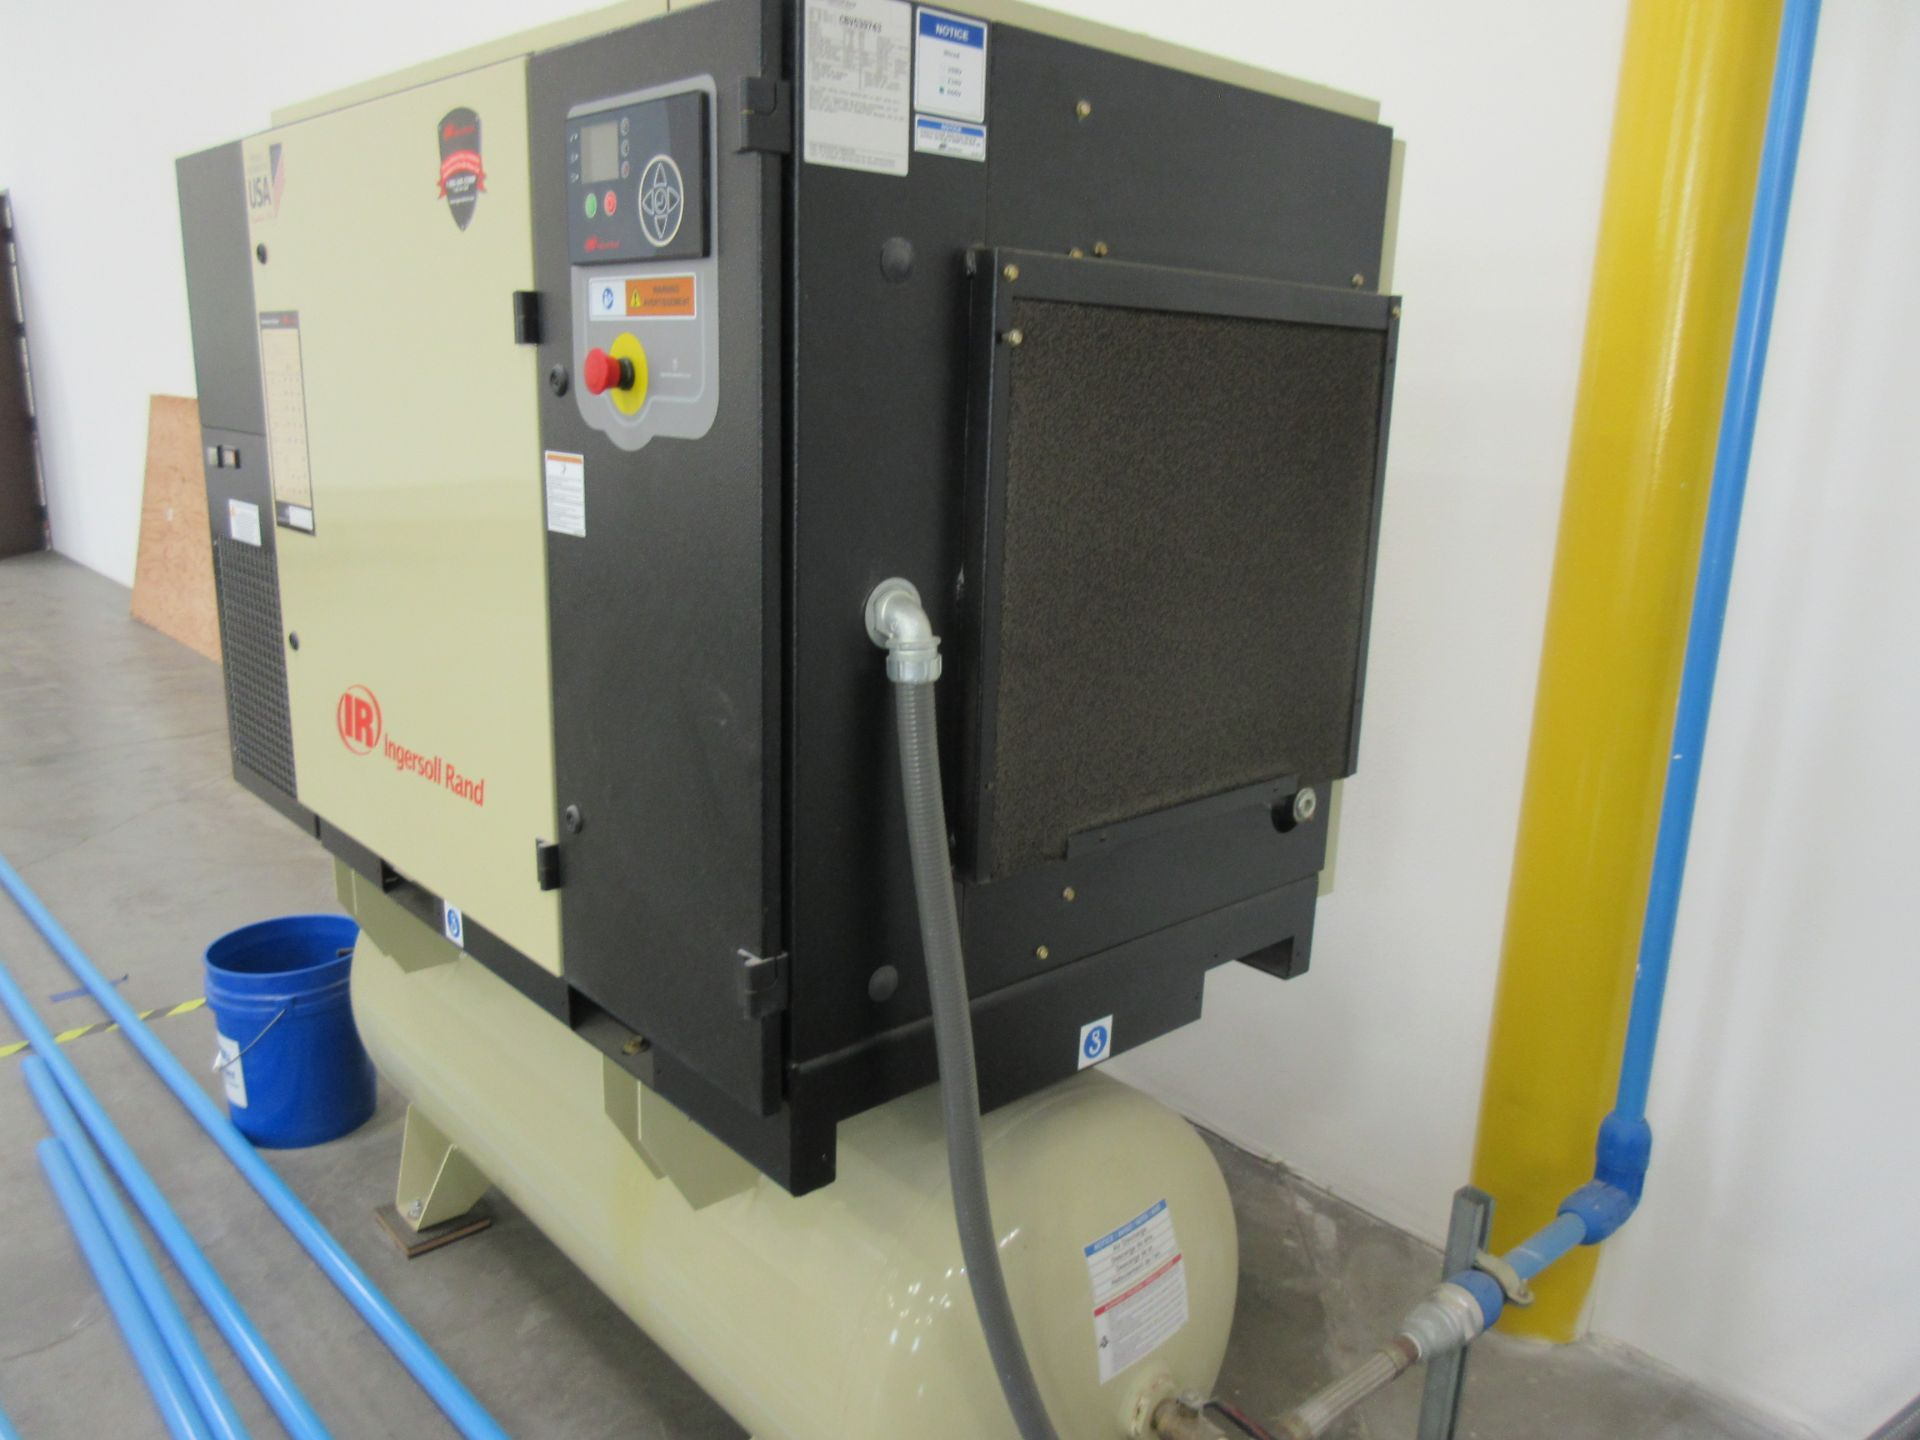 Lot 4a - INGERSOLL RAND MDL. UP6S-30-145 TANK MOUNTED ROTARY SCREW AIR COMPRESSOR, 30HP, 145 MAX PSIG